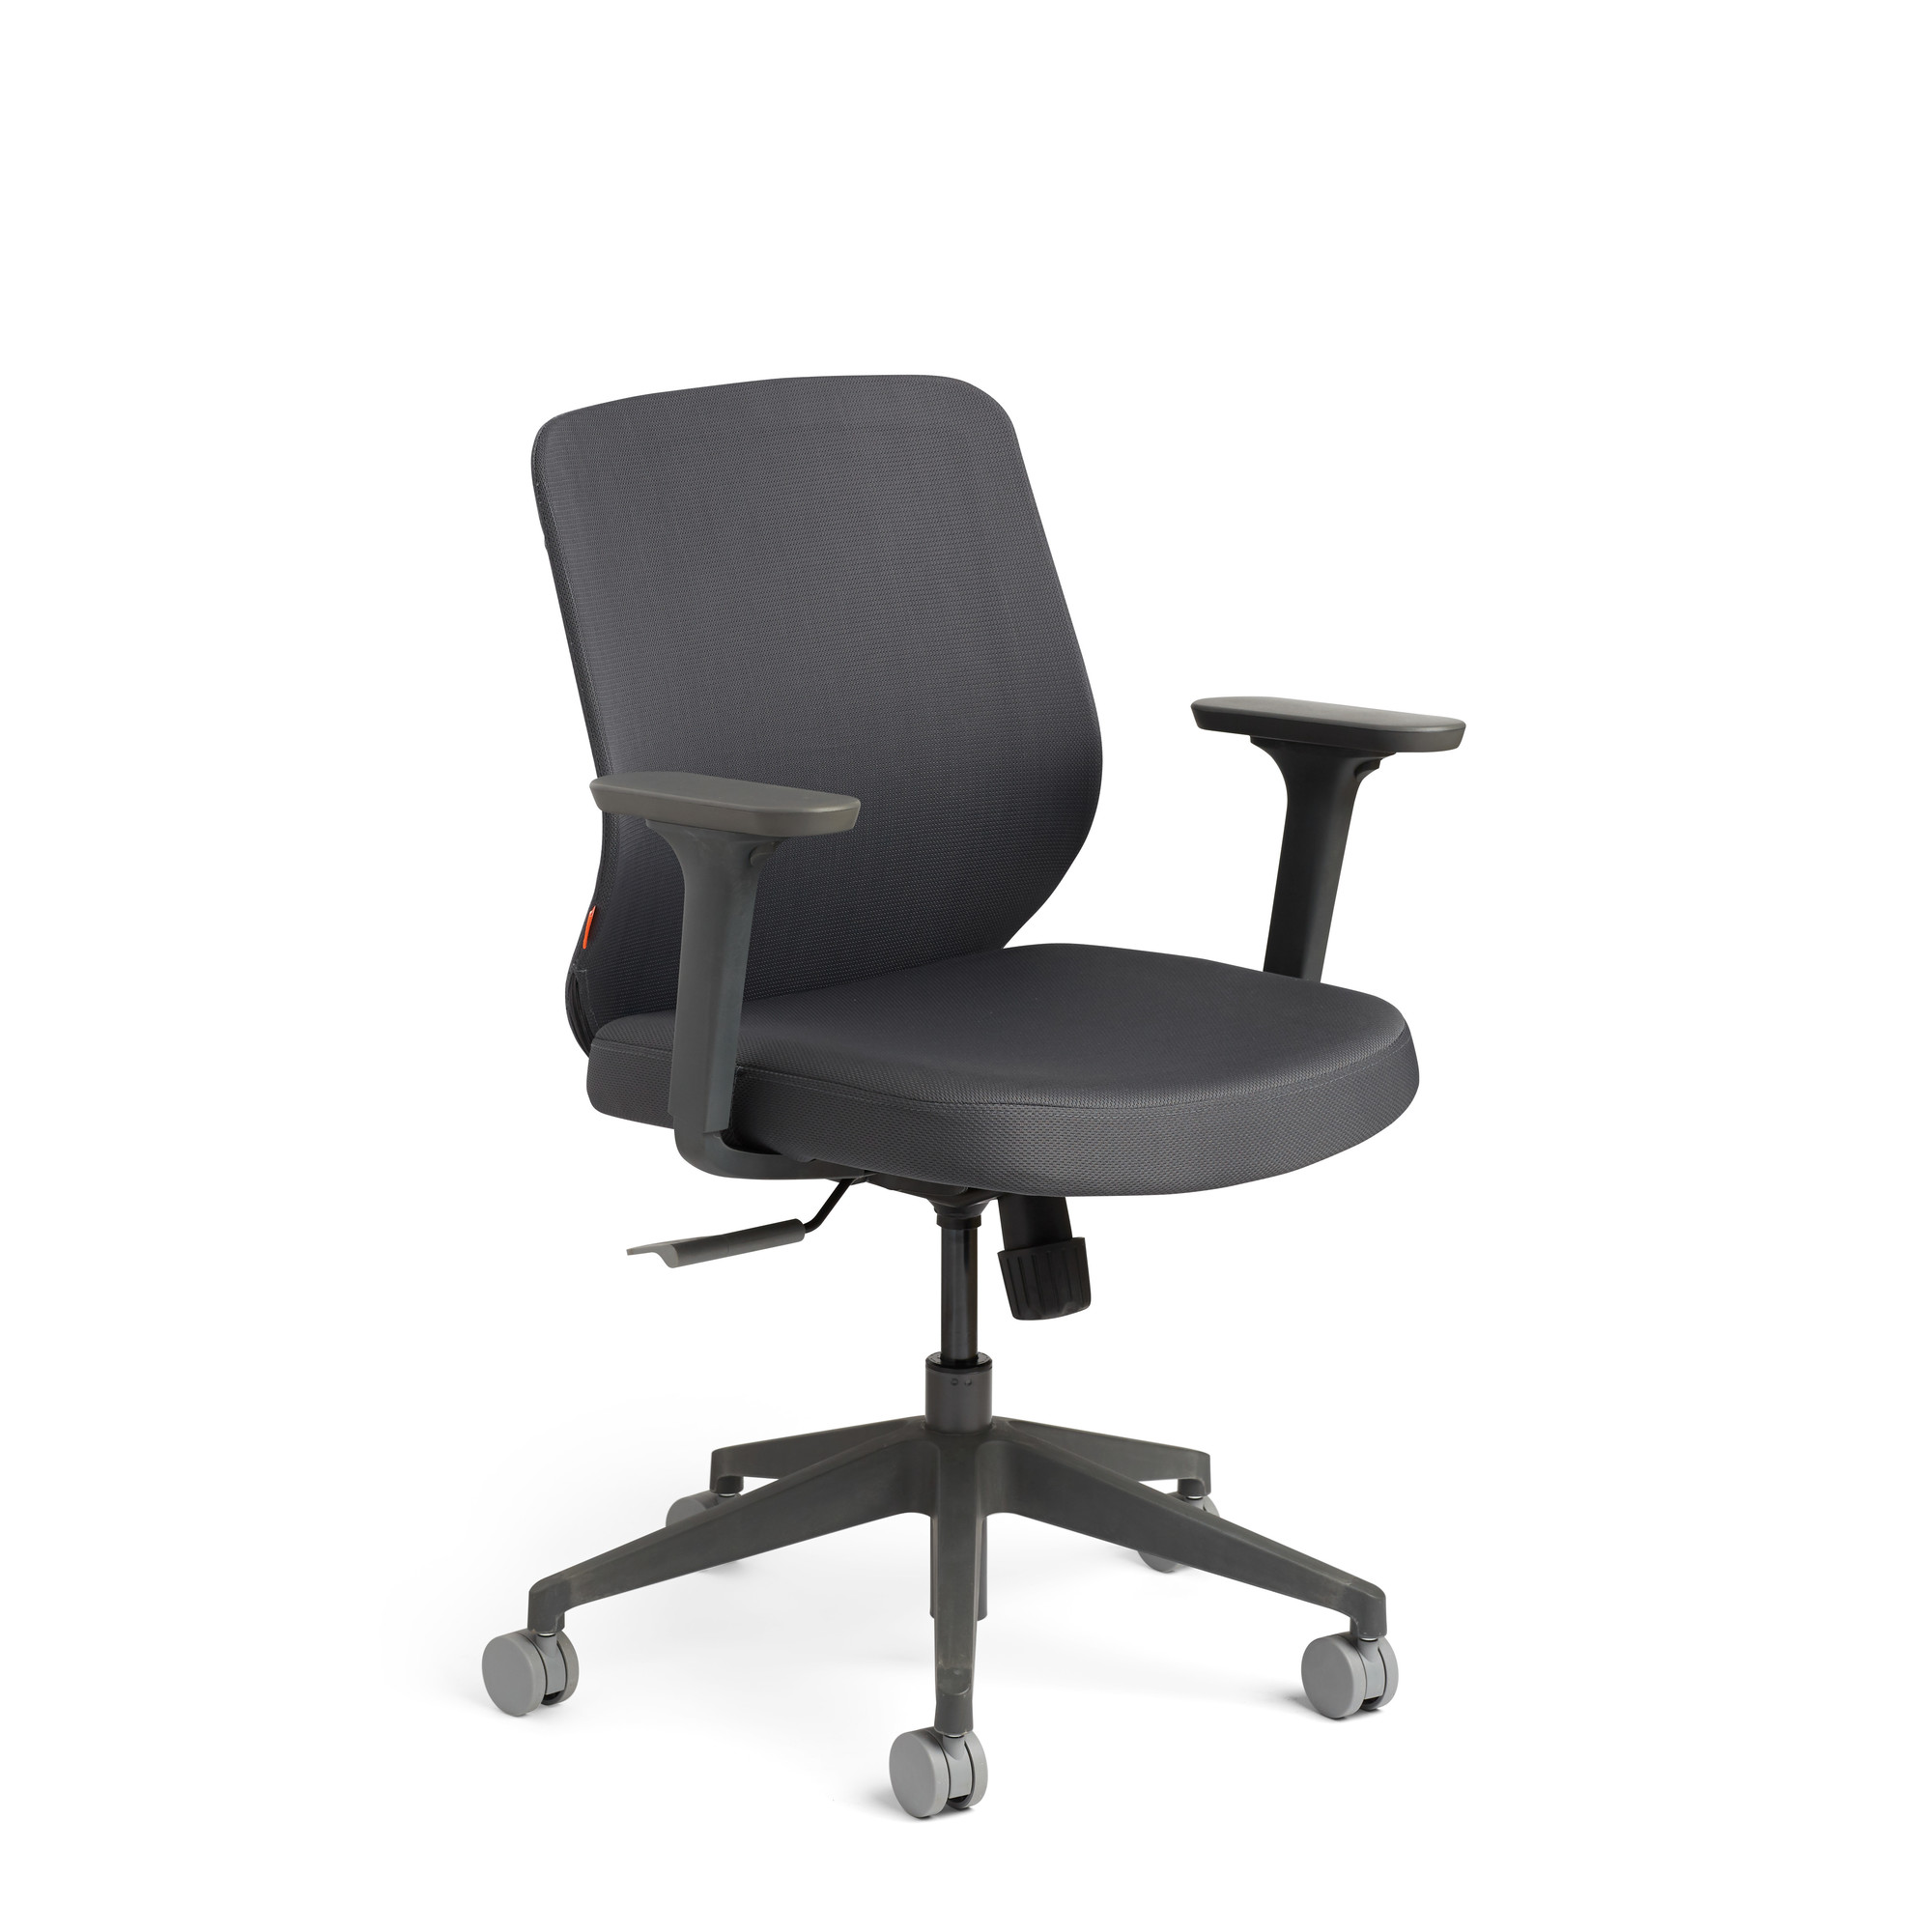 Office Chairs, Computer Desk & Home Office | Office Furniture | Poppin